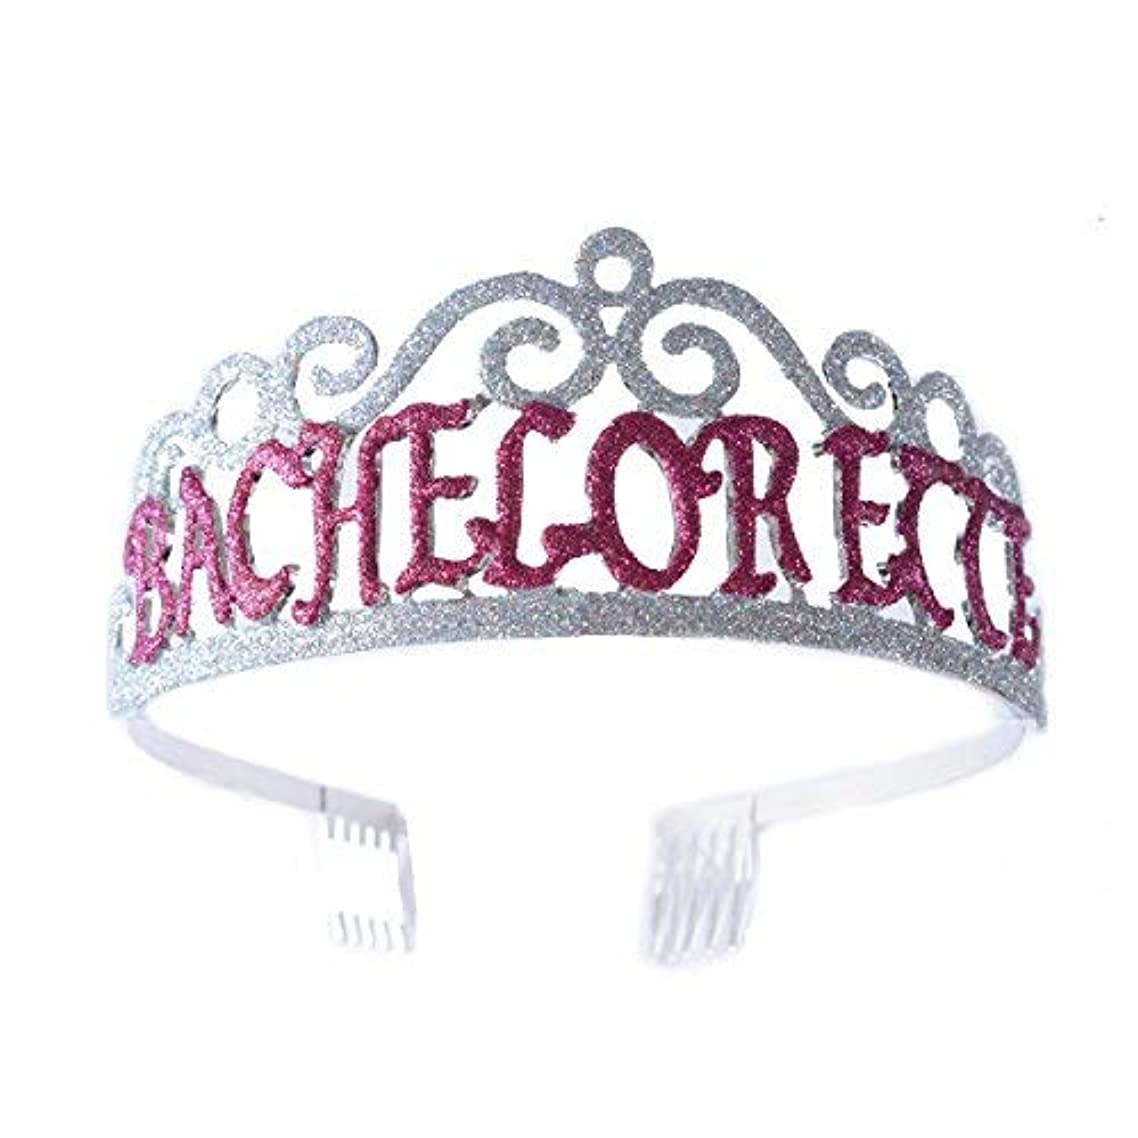 残酷な取得シンプルさFF Bachelorette Tiara Glittered Metal Combs with Silver AB Sequins [並行輸入品]